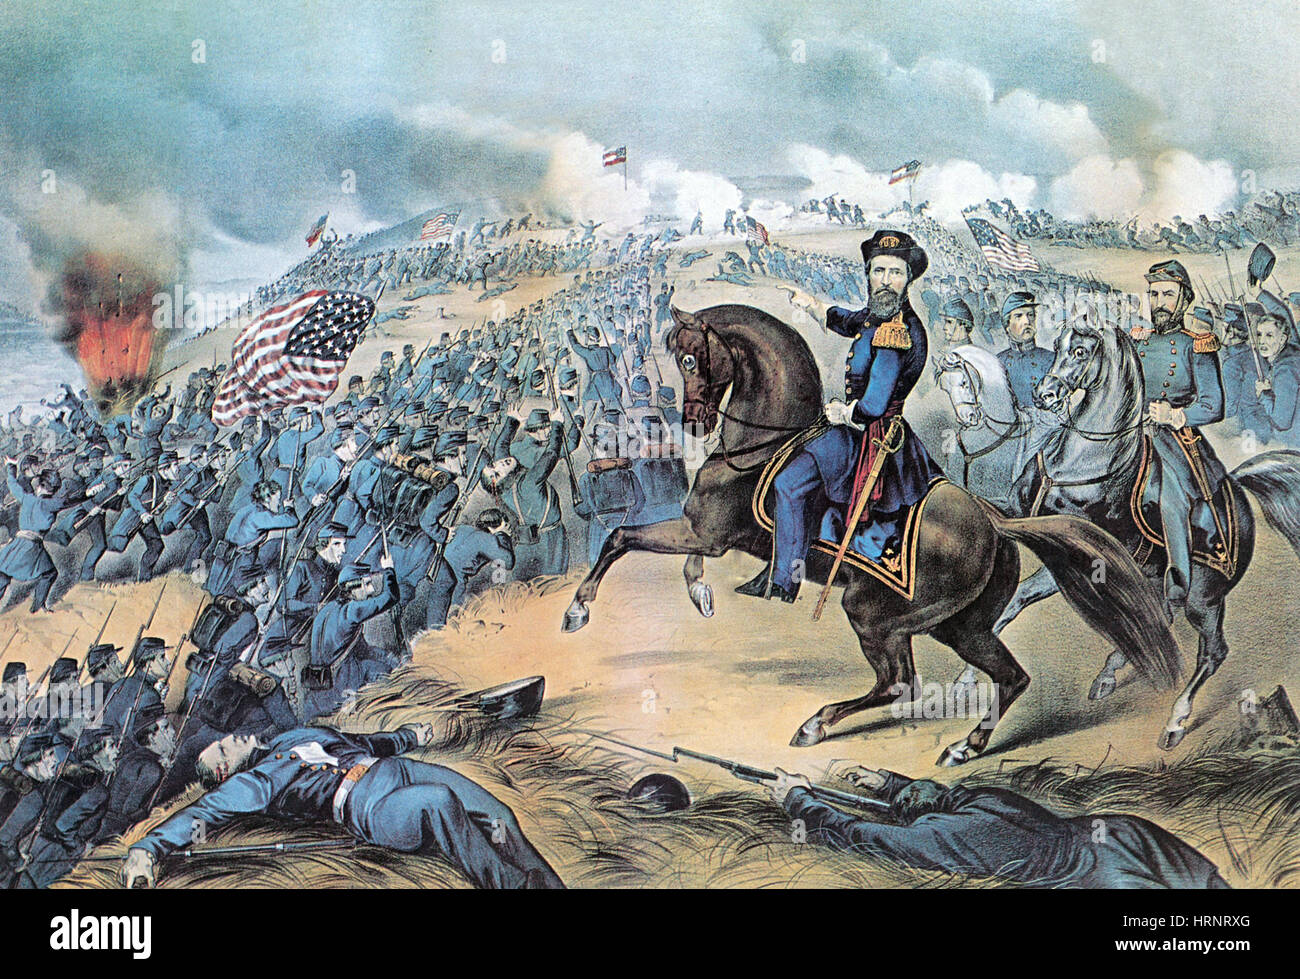 American Civil War Battle Of Fort Donelson 1862 Stock Image